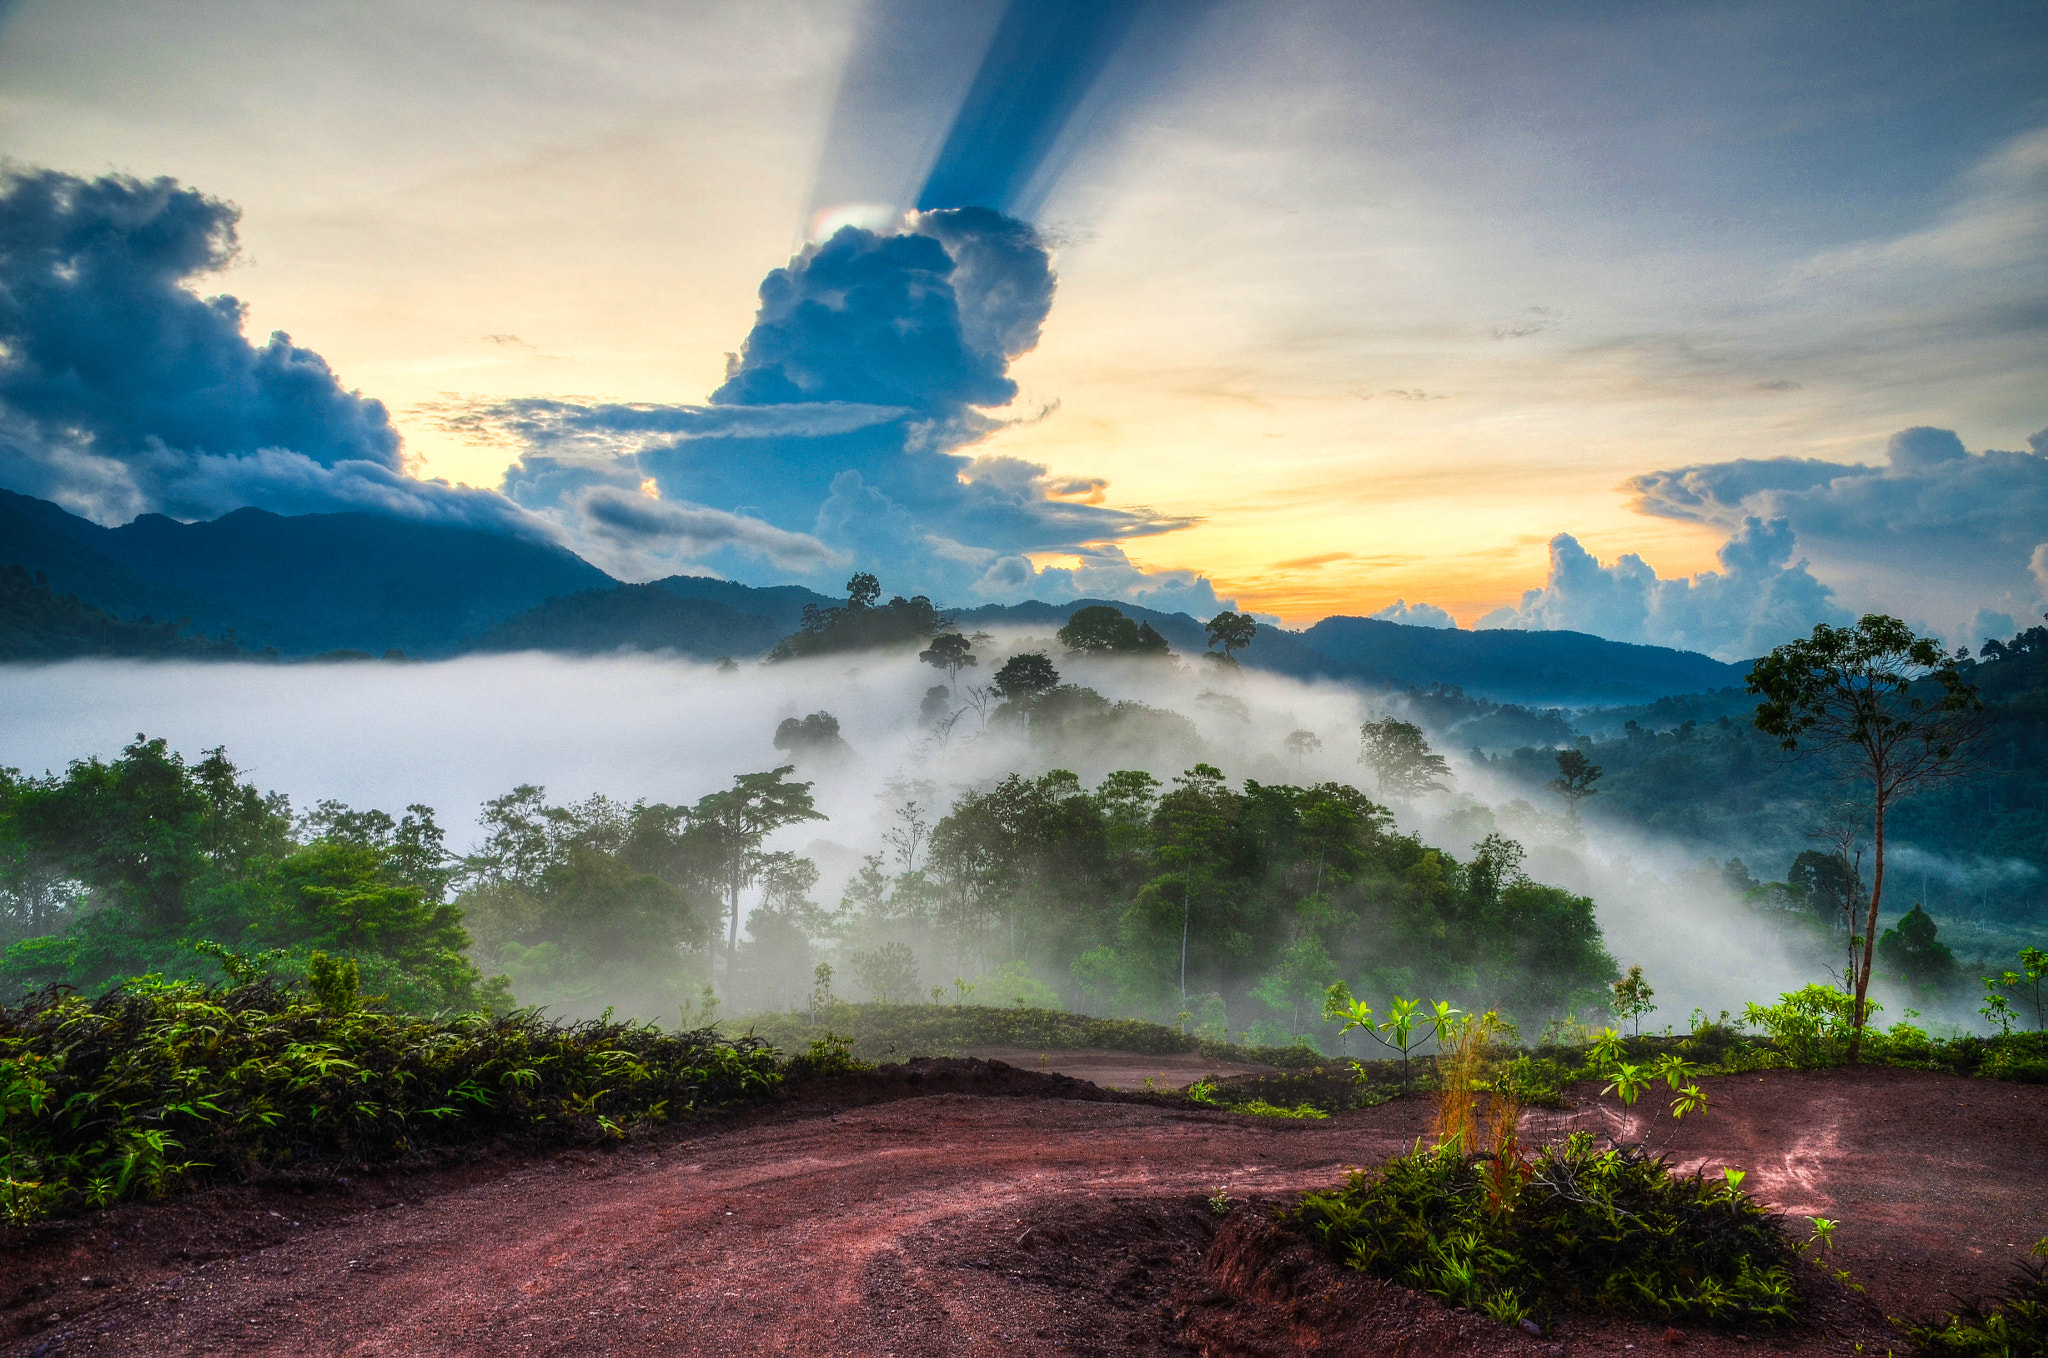 Photograph Flying mist by Nuang Sangkhsri on 500px